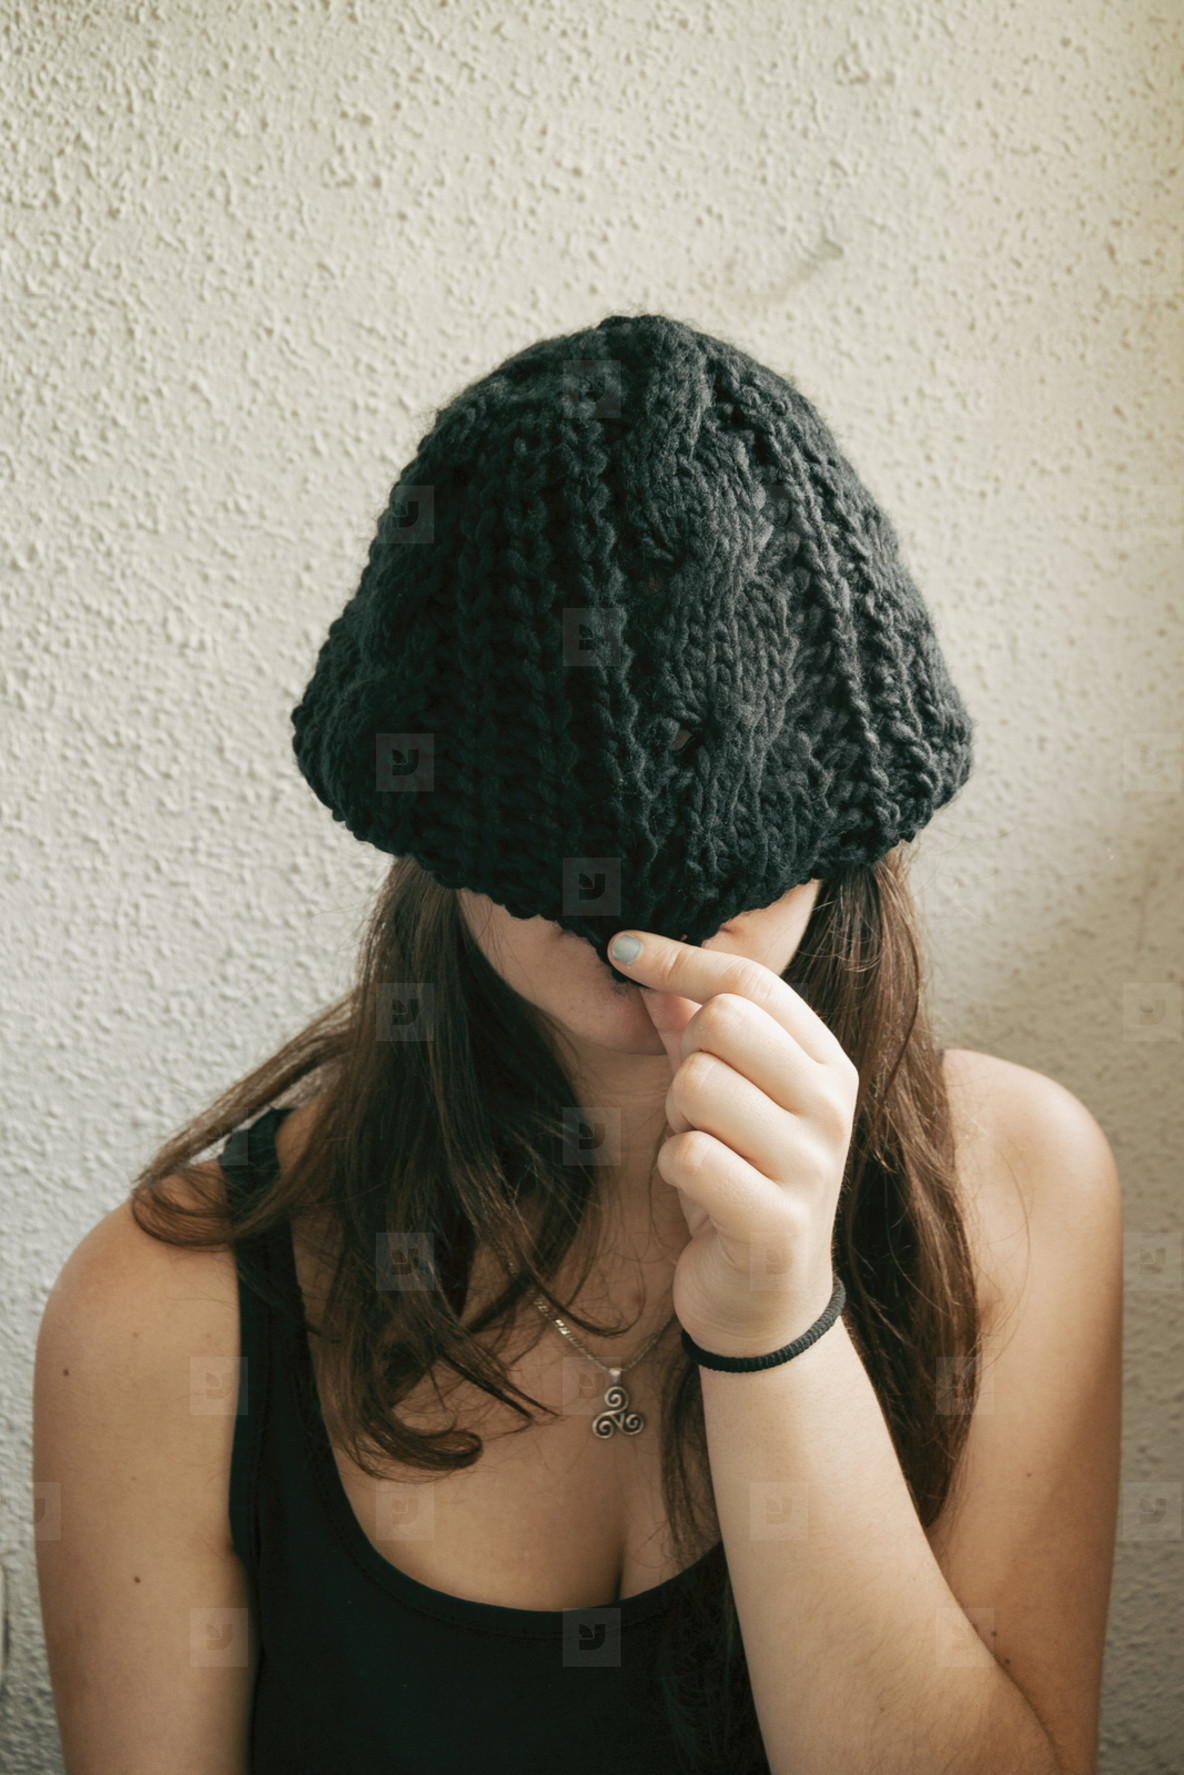 480eccc5d62 Photos - long-haired girl covering her face with her hat ...